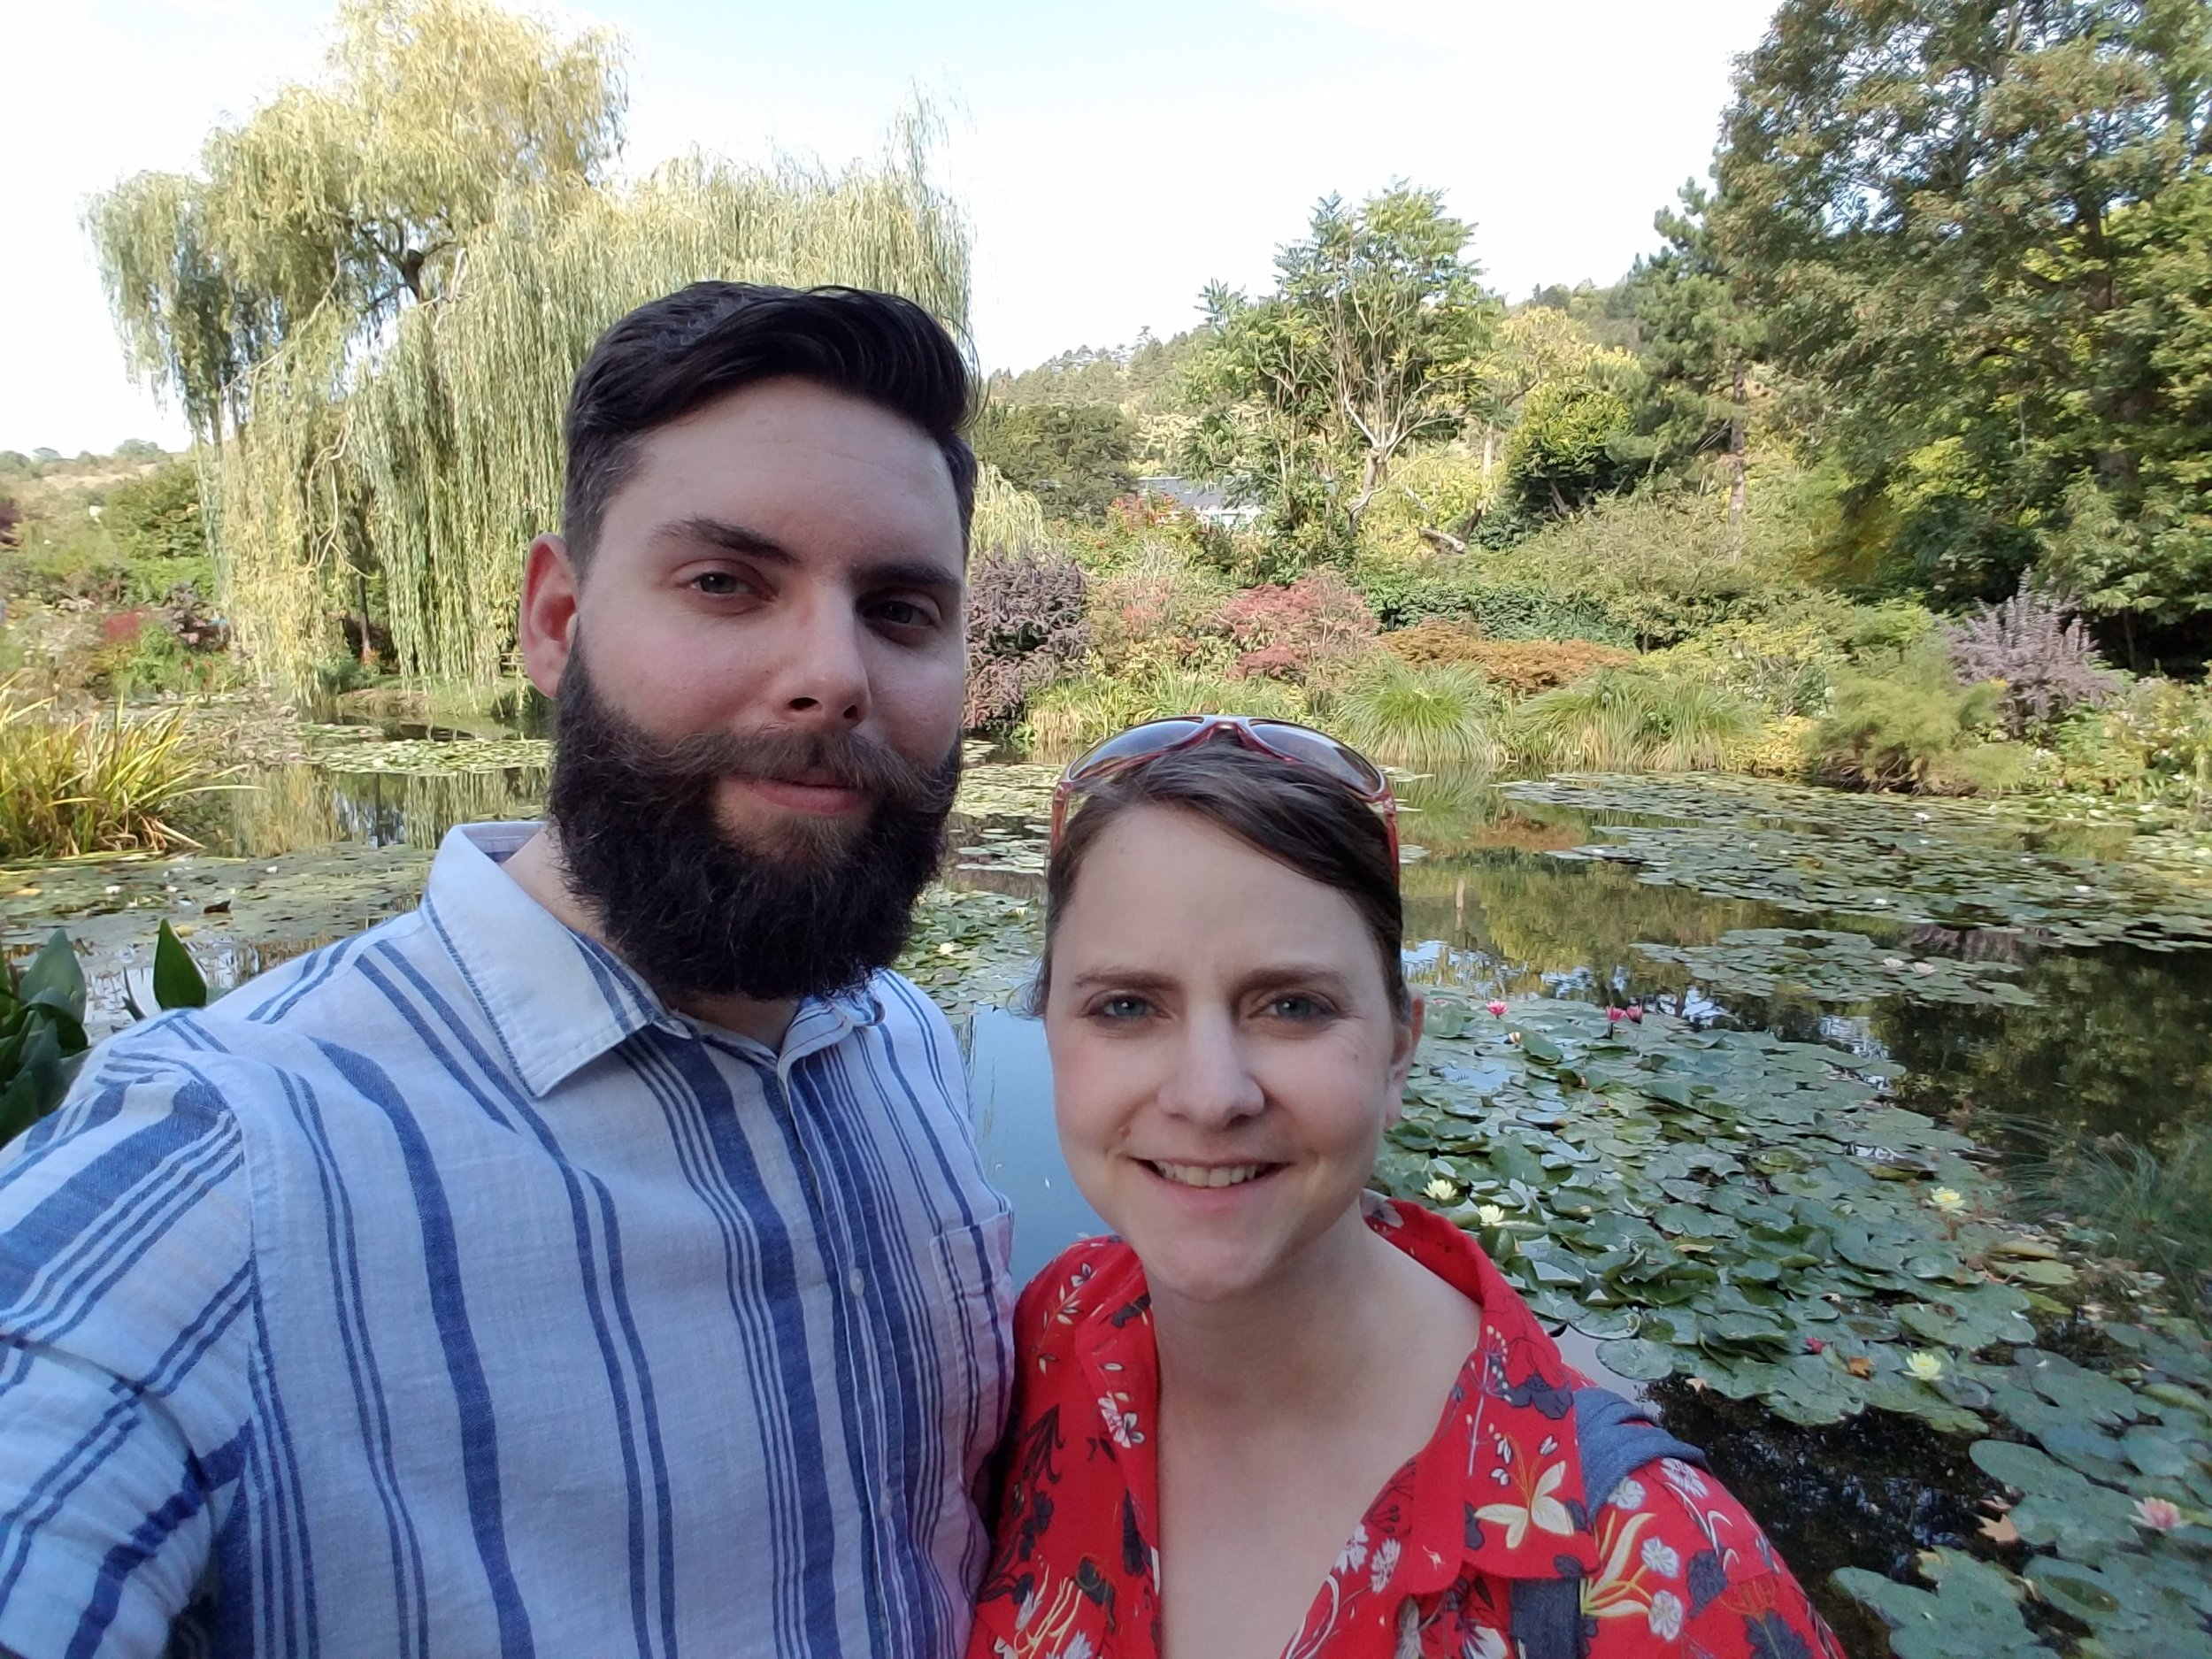 Tyler and I at the Giverny gardens